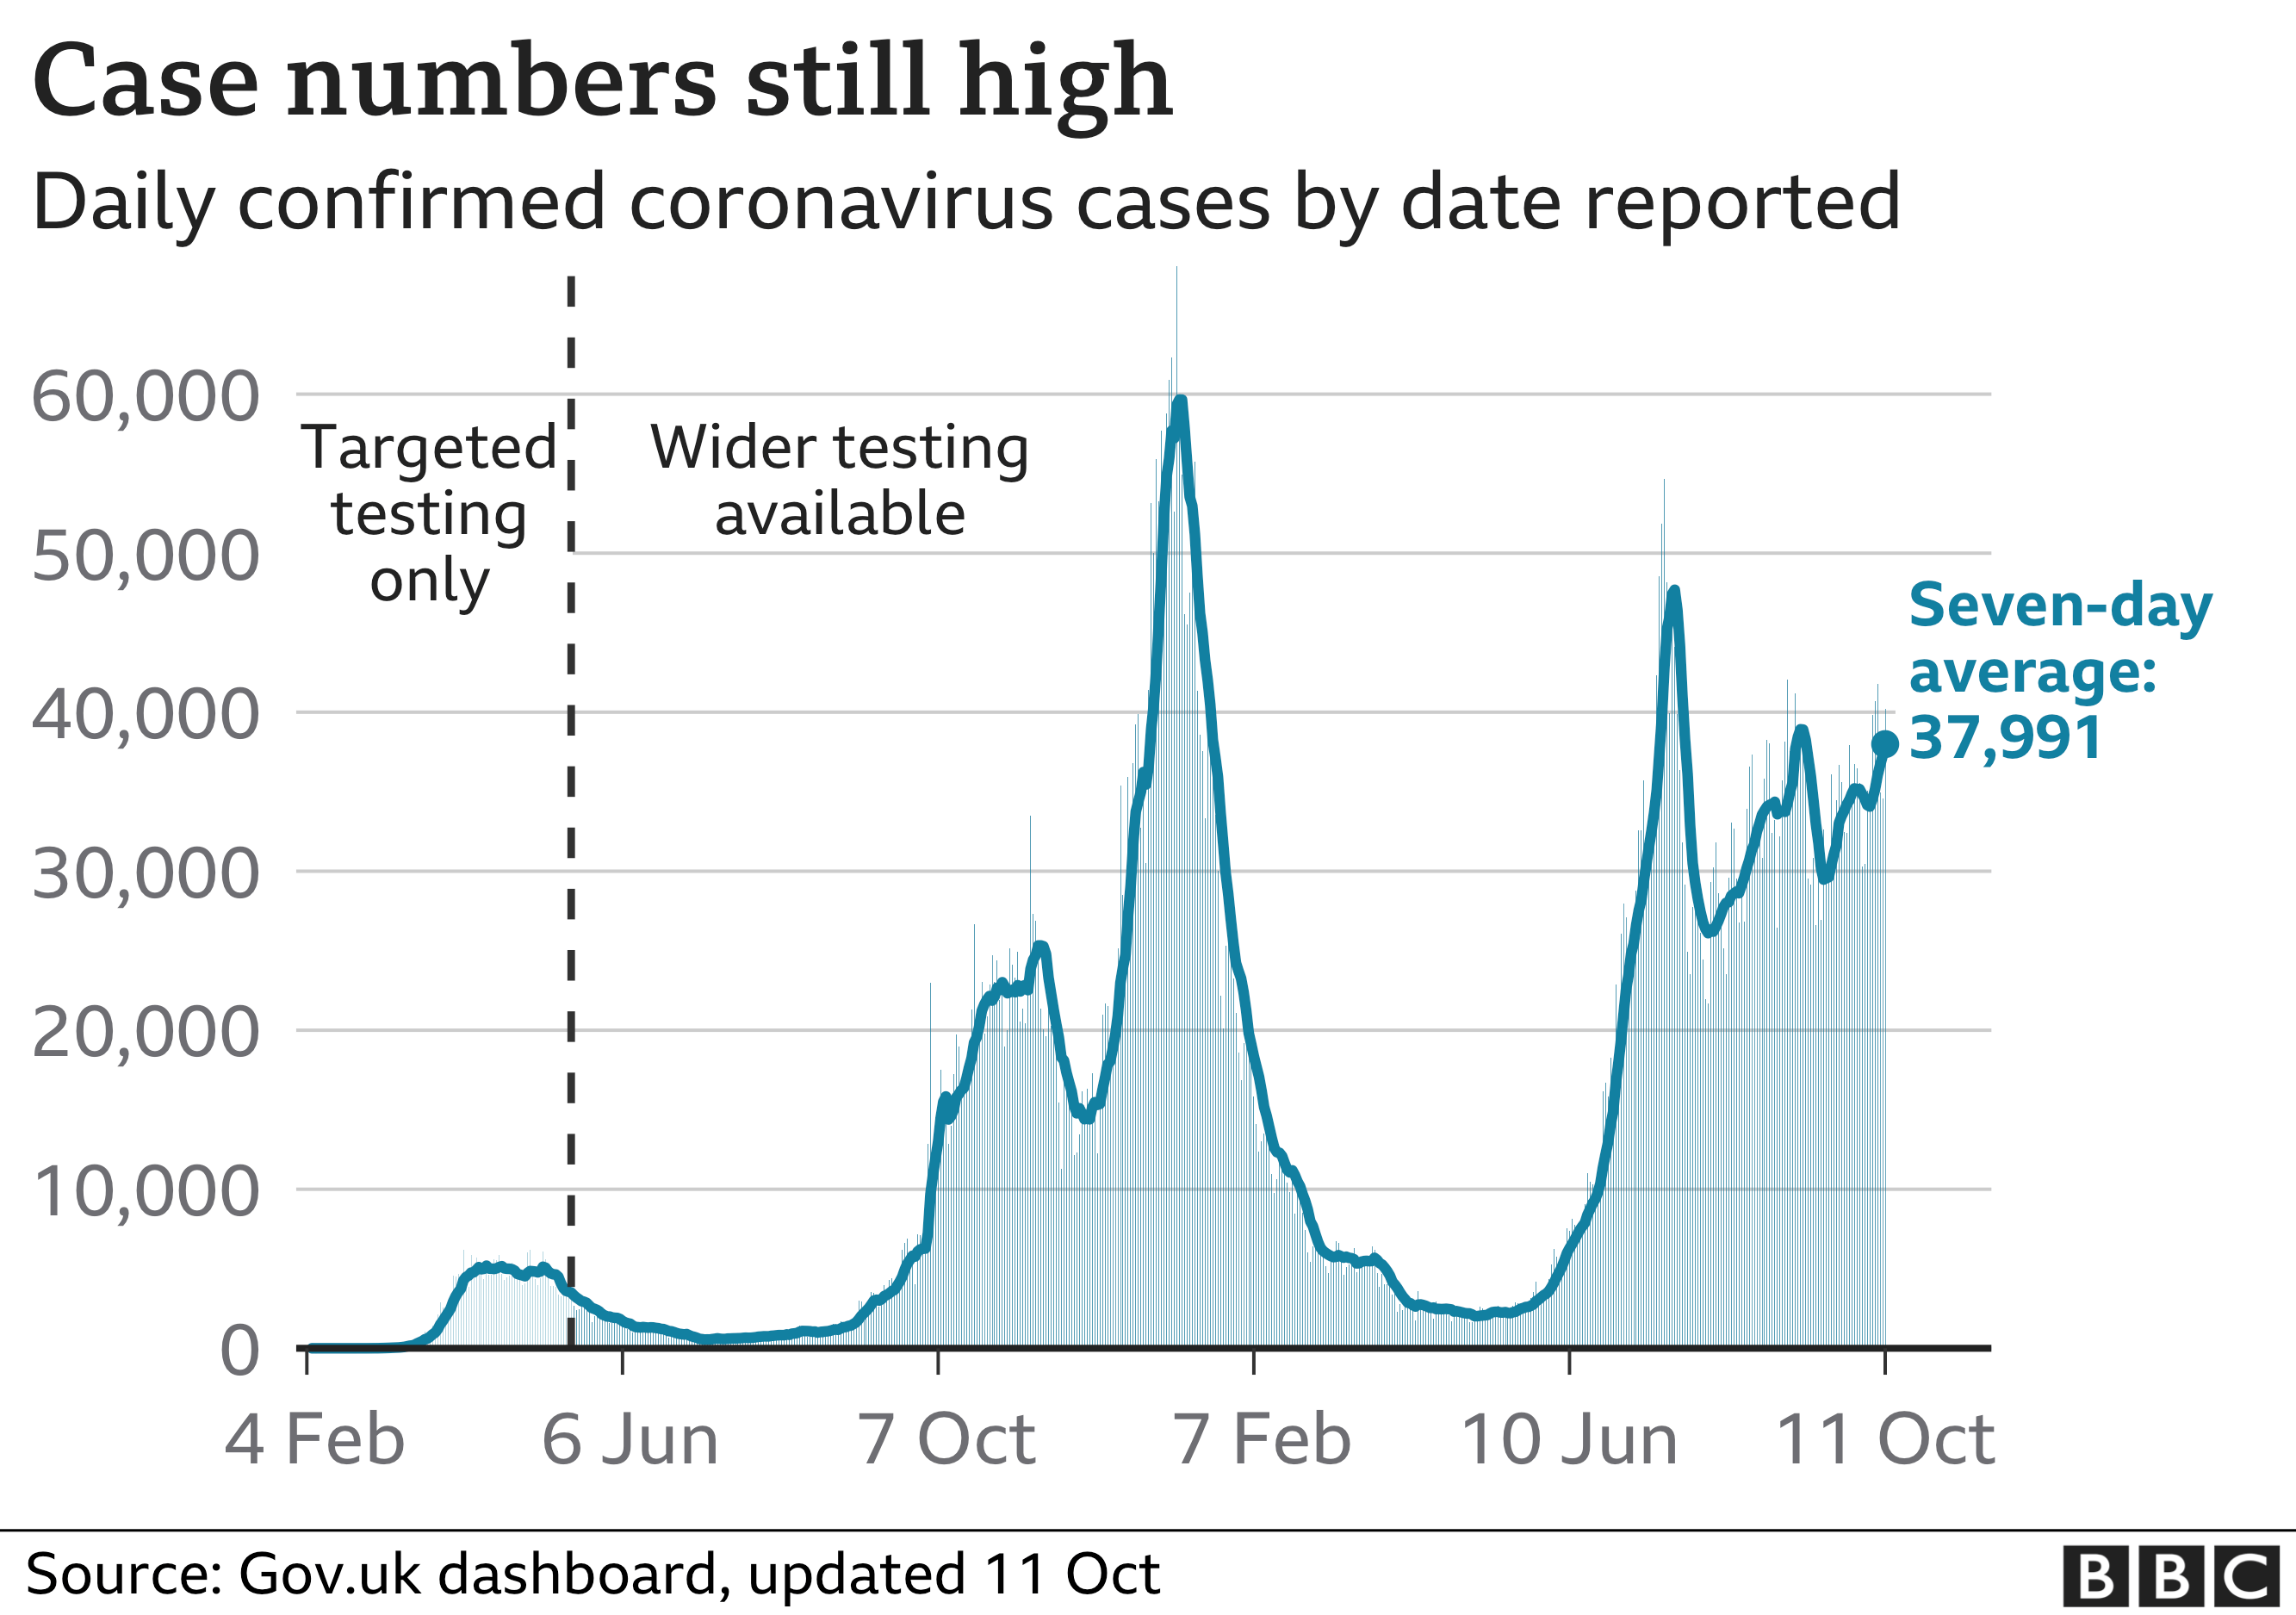 Chart showing that the number of daily cases remains high